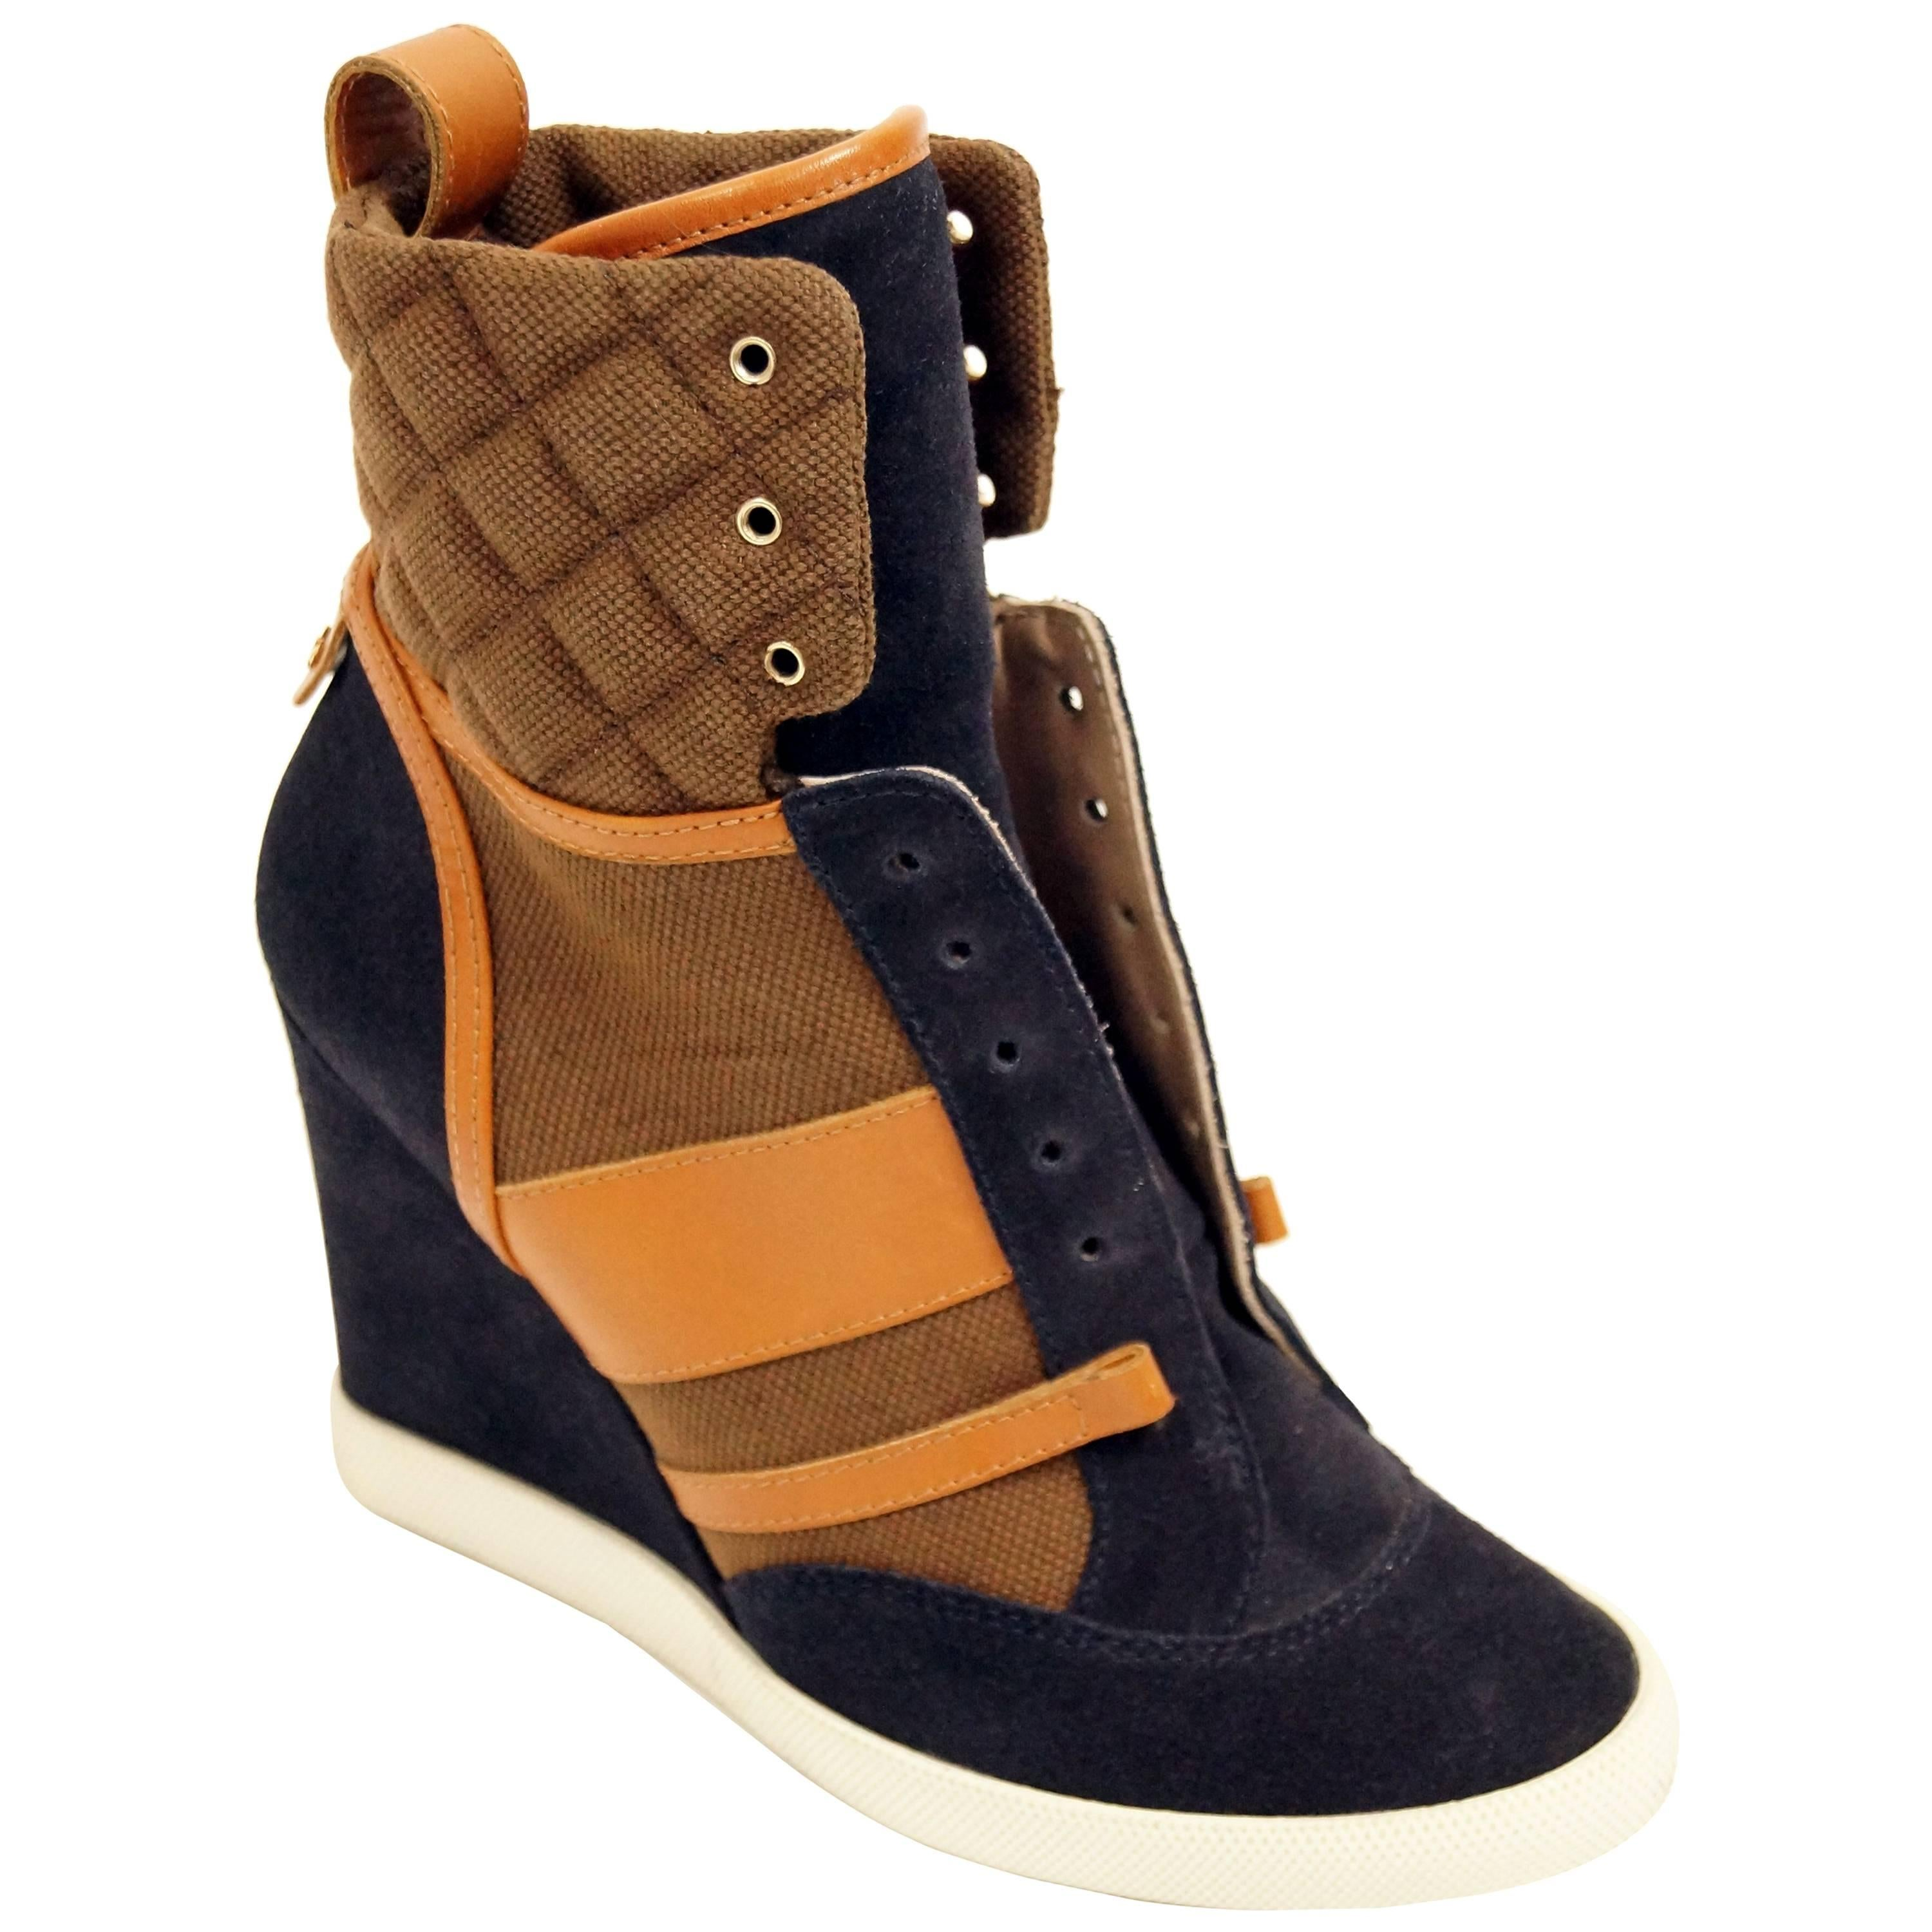 Chloé Blue and Brown Suede, Leather and